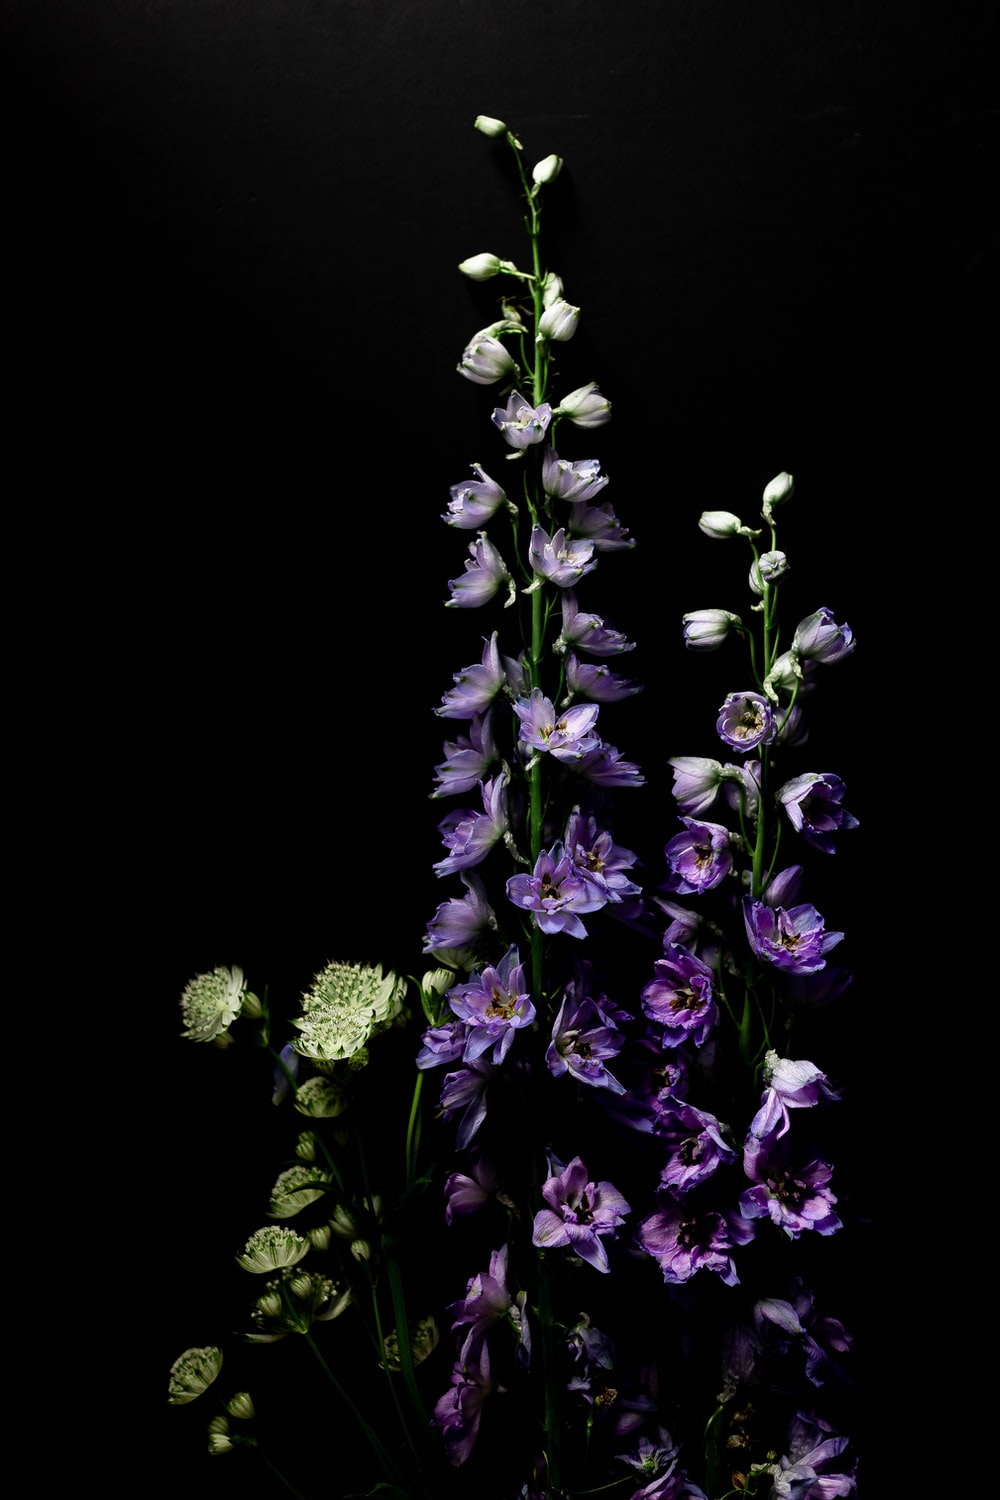 purple and white flowers with black background